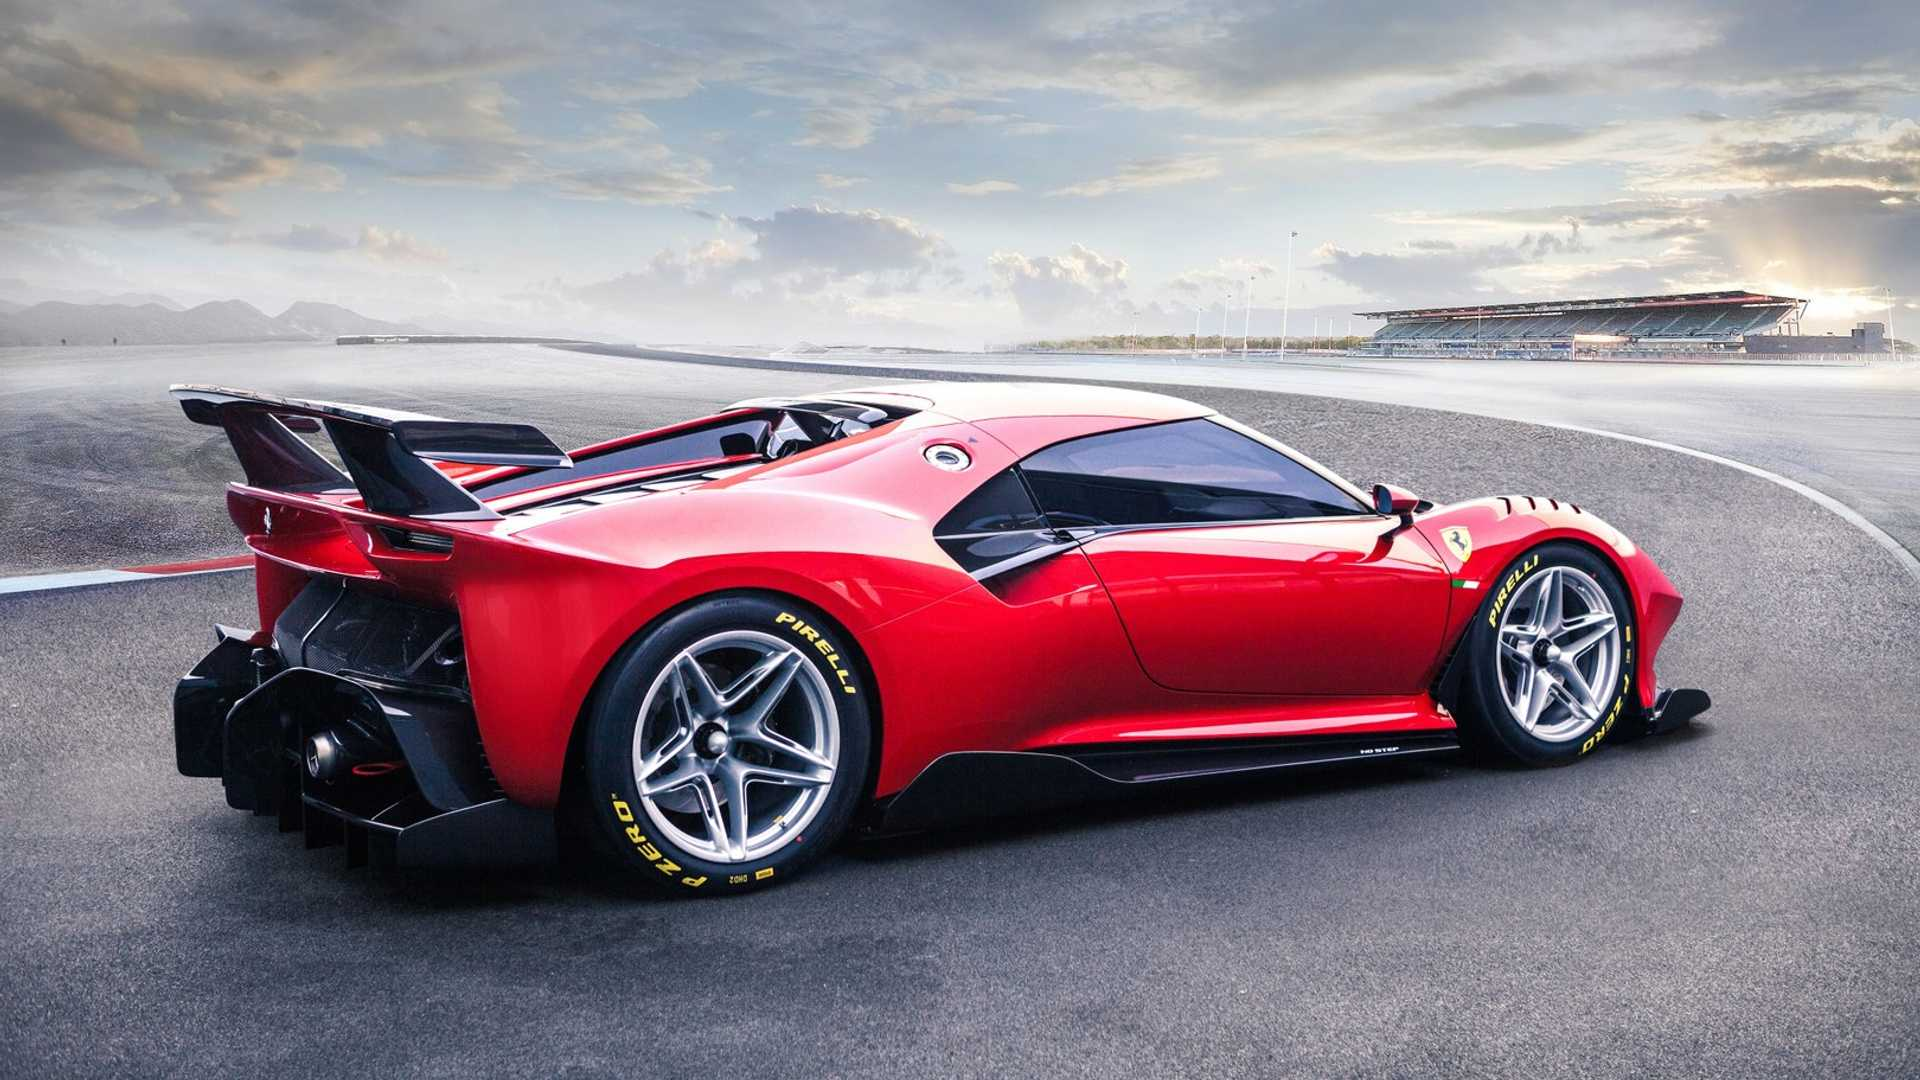 41 Best Ferrari Modelli 2019 Ratings